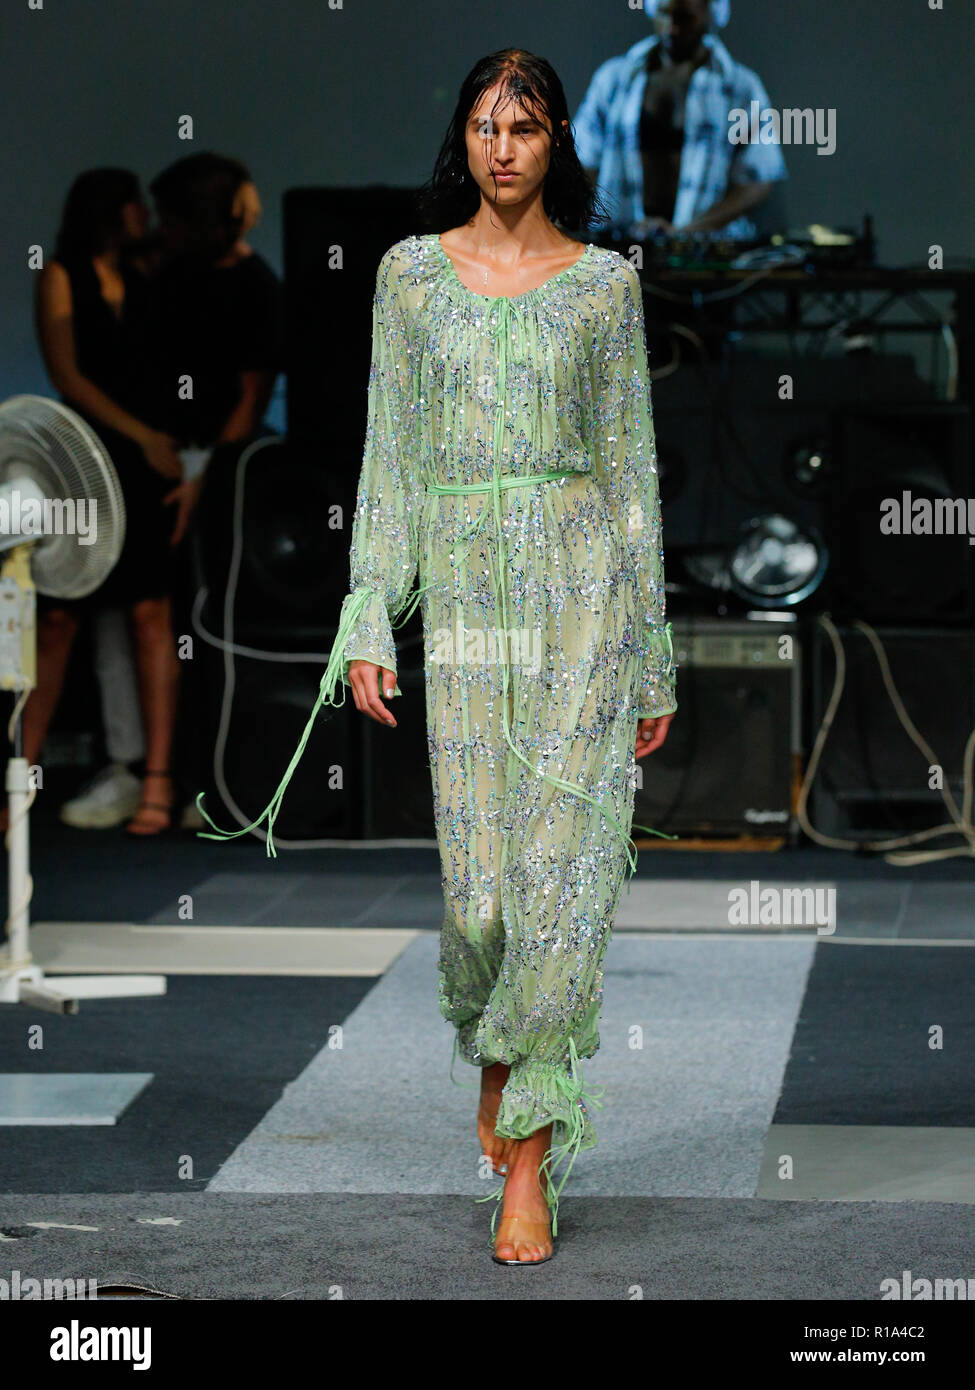 British Designer Ashish Catwalk At London Fashion Week Summer Spring 2019 Ss19 British Fashion Council Venue At Strand 180 Stock Photo Alamy